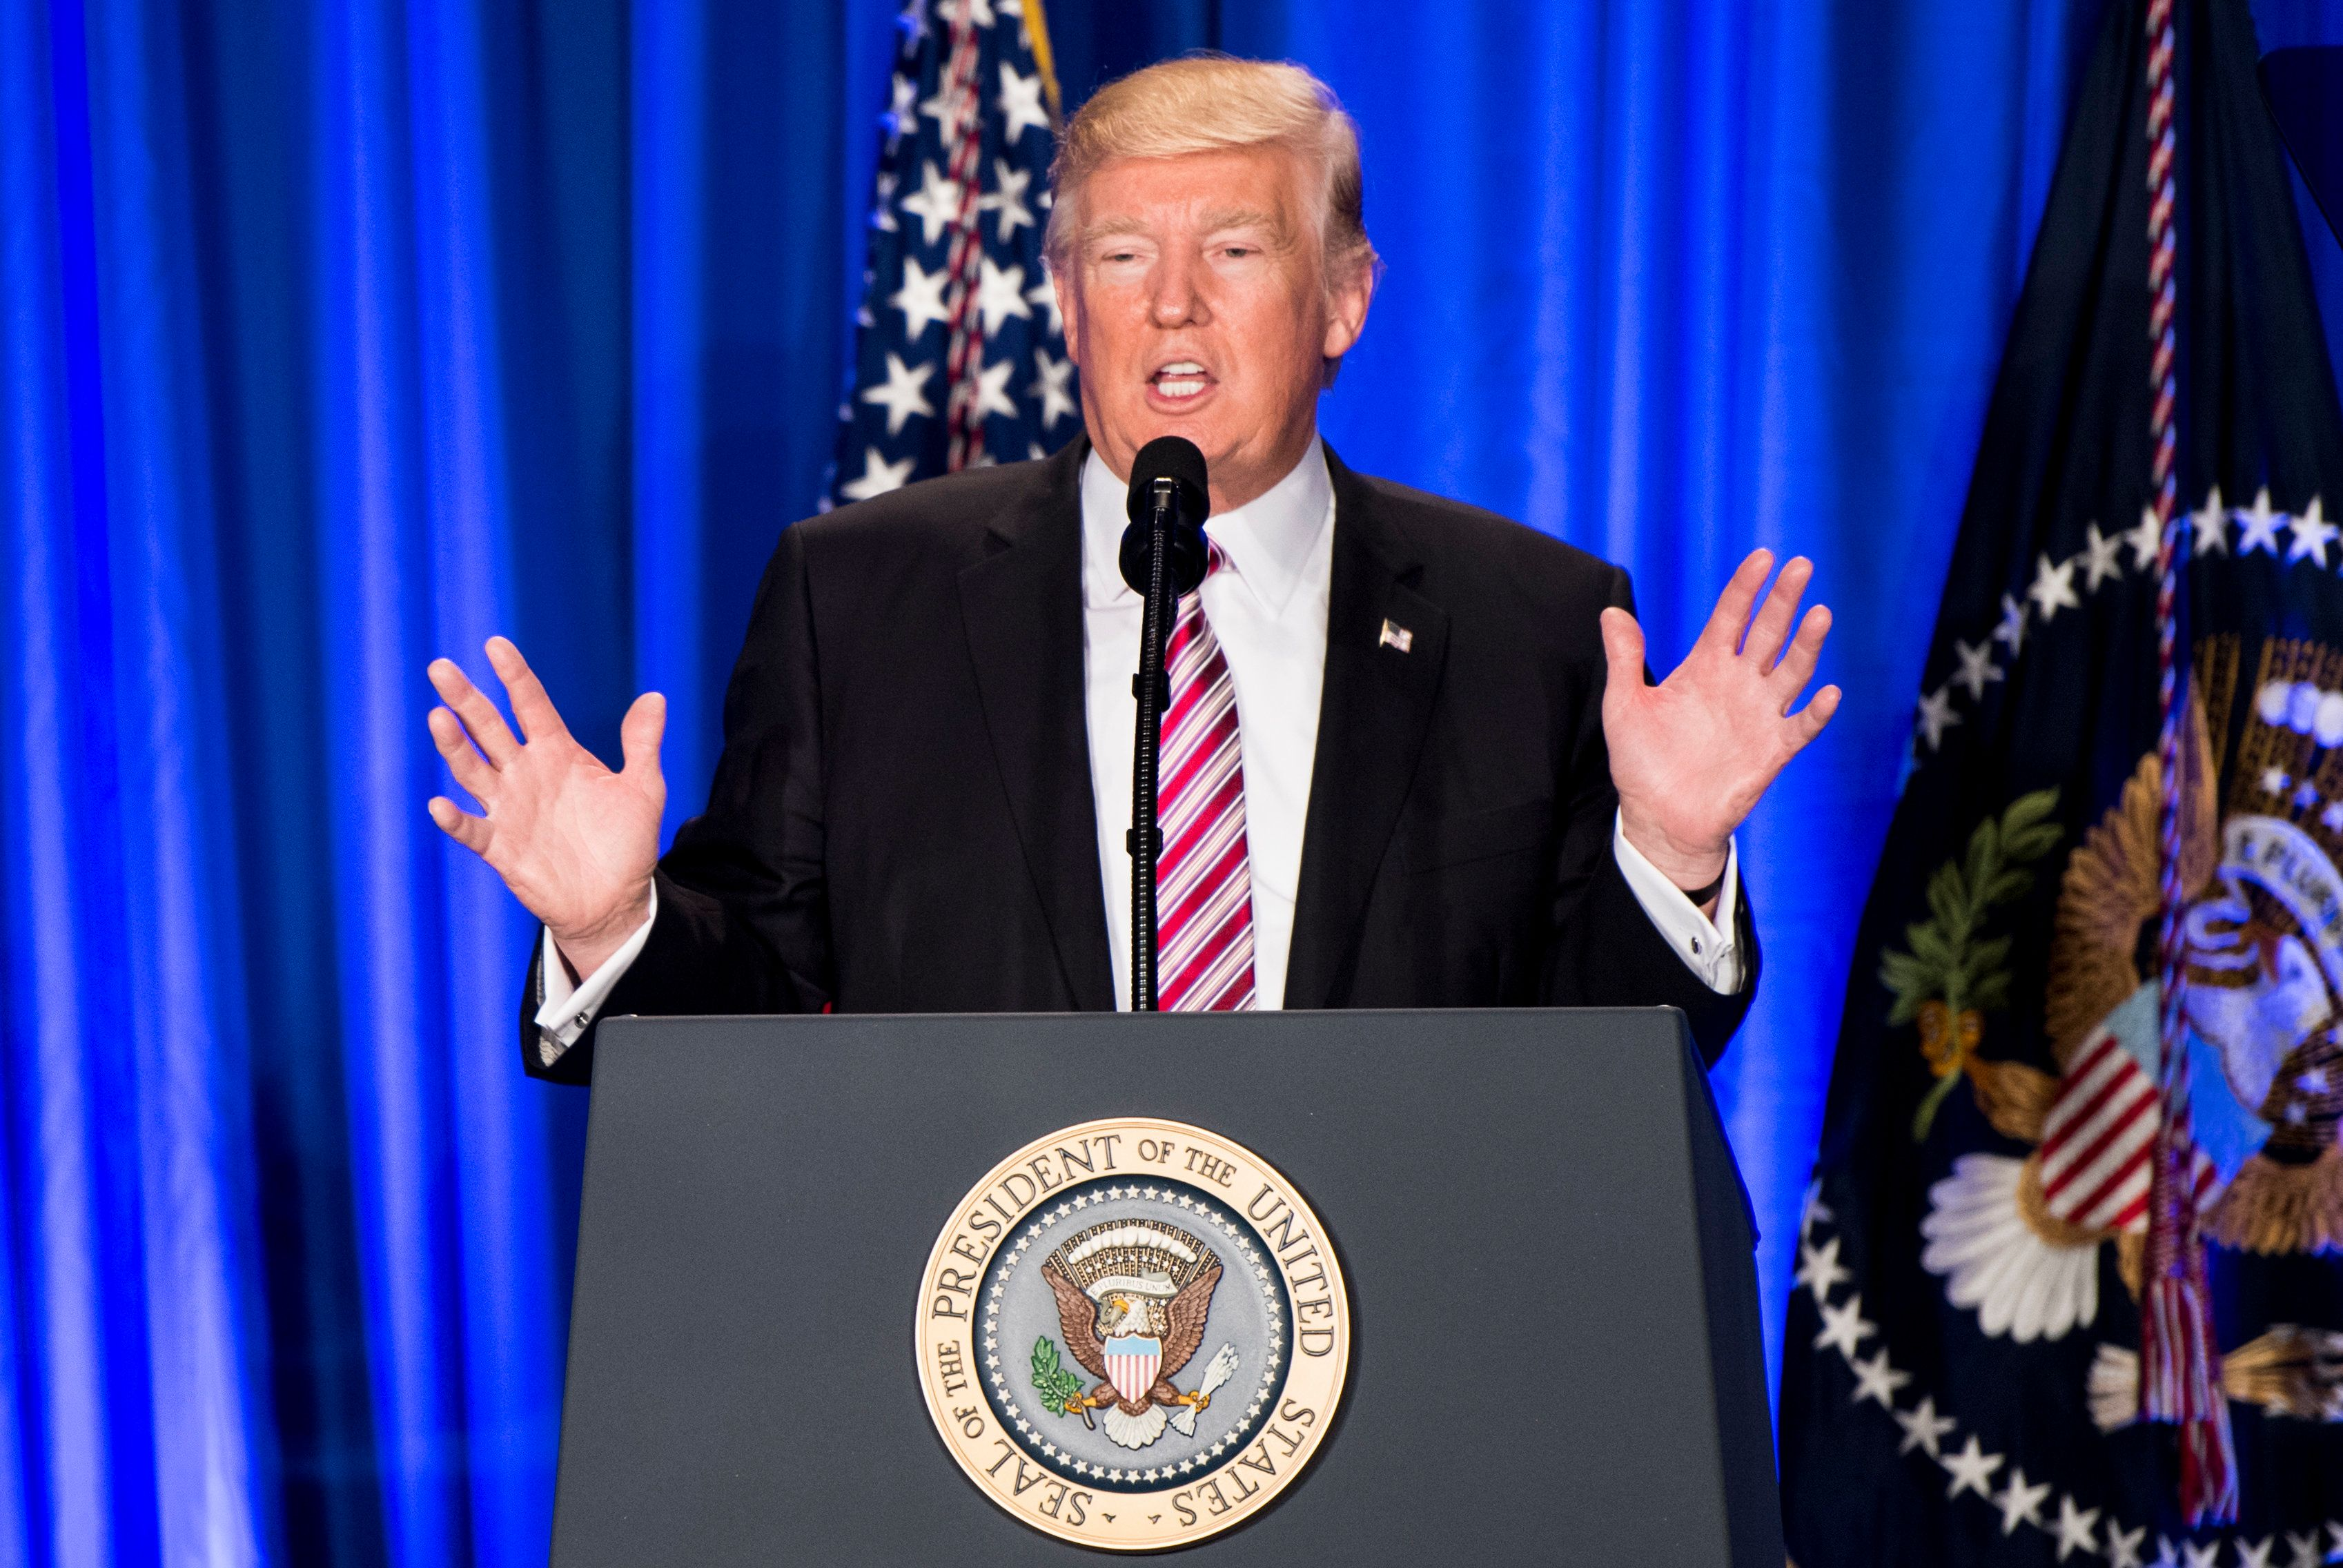 President Donald Trump spoke at the GOP Congressional retreat in Philadelphia on Thursday. He did not bring up his tax return